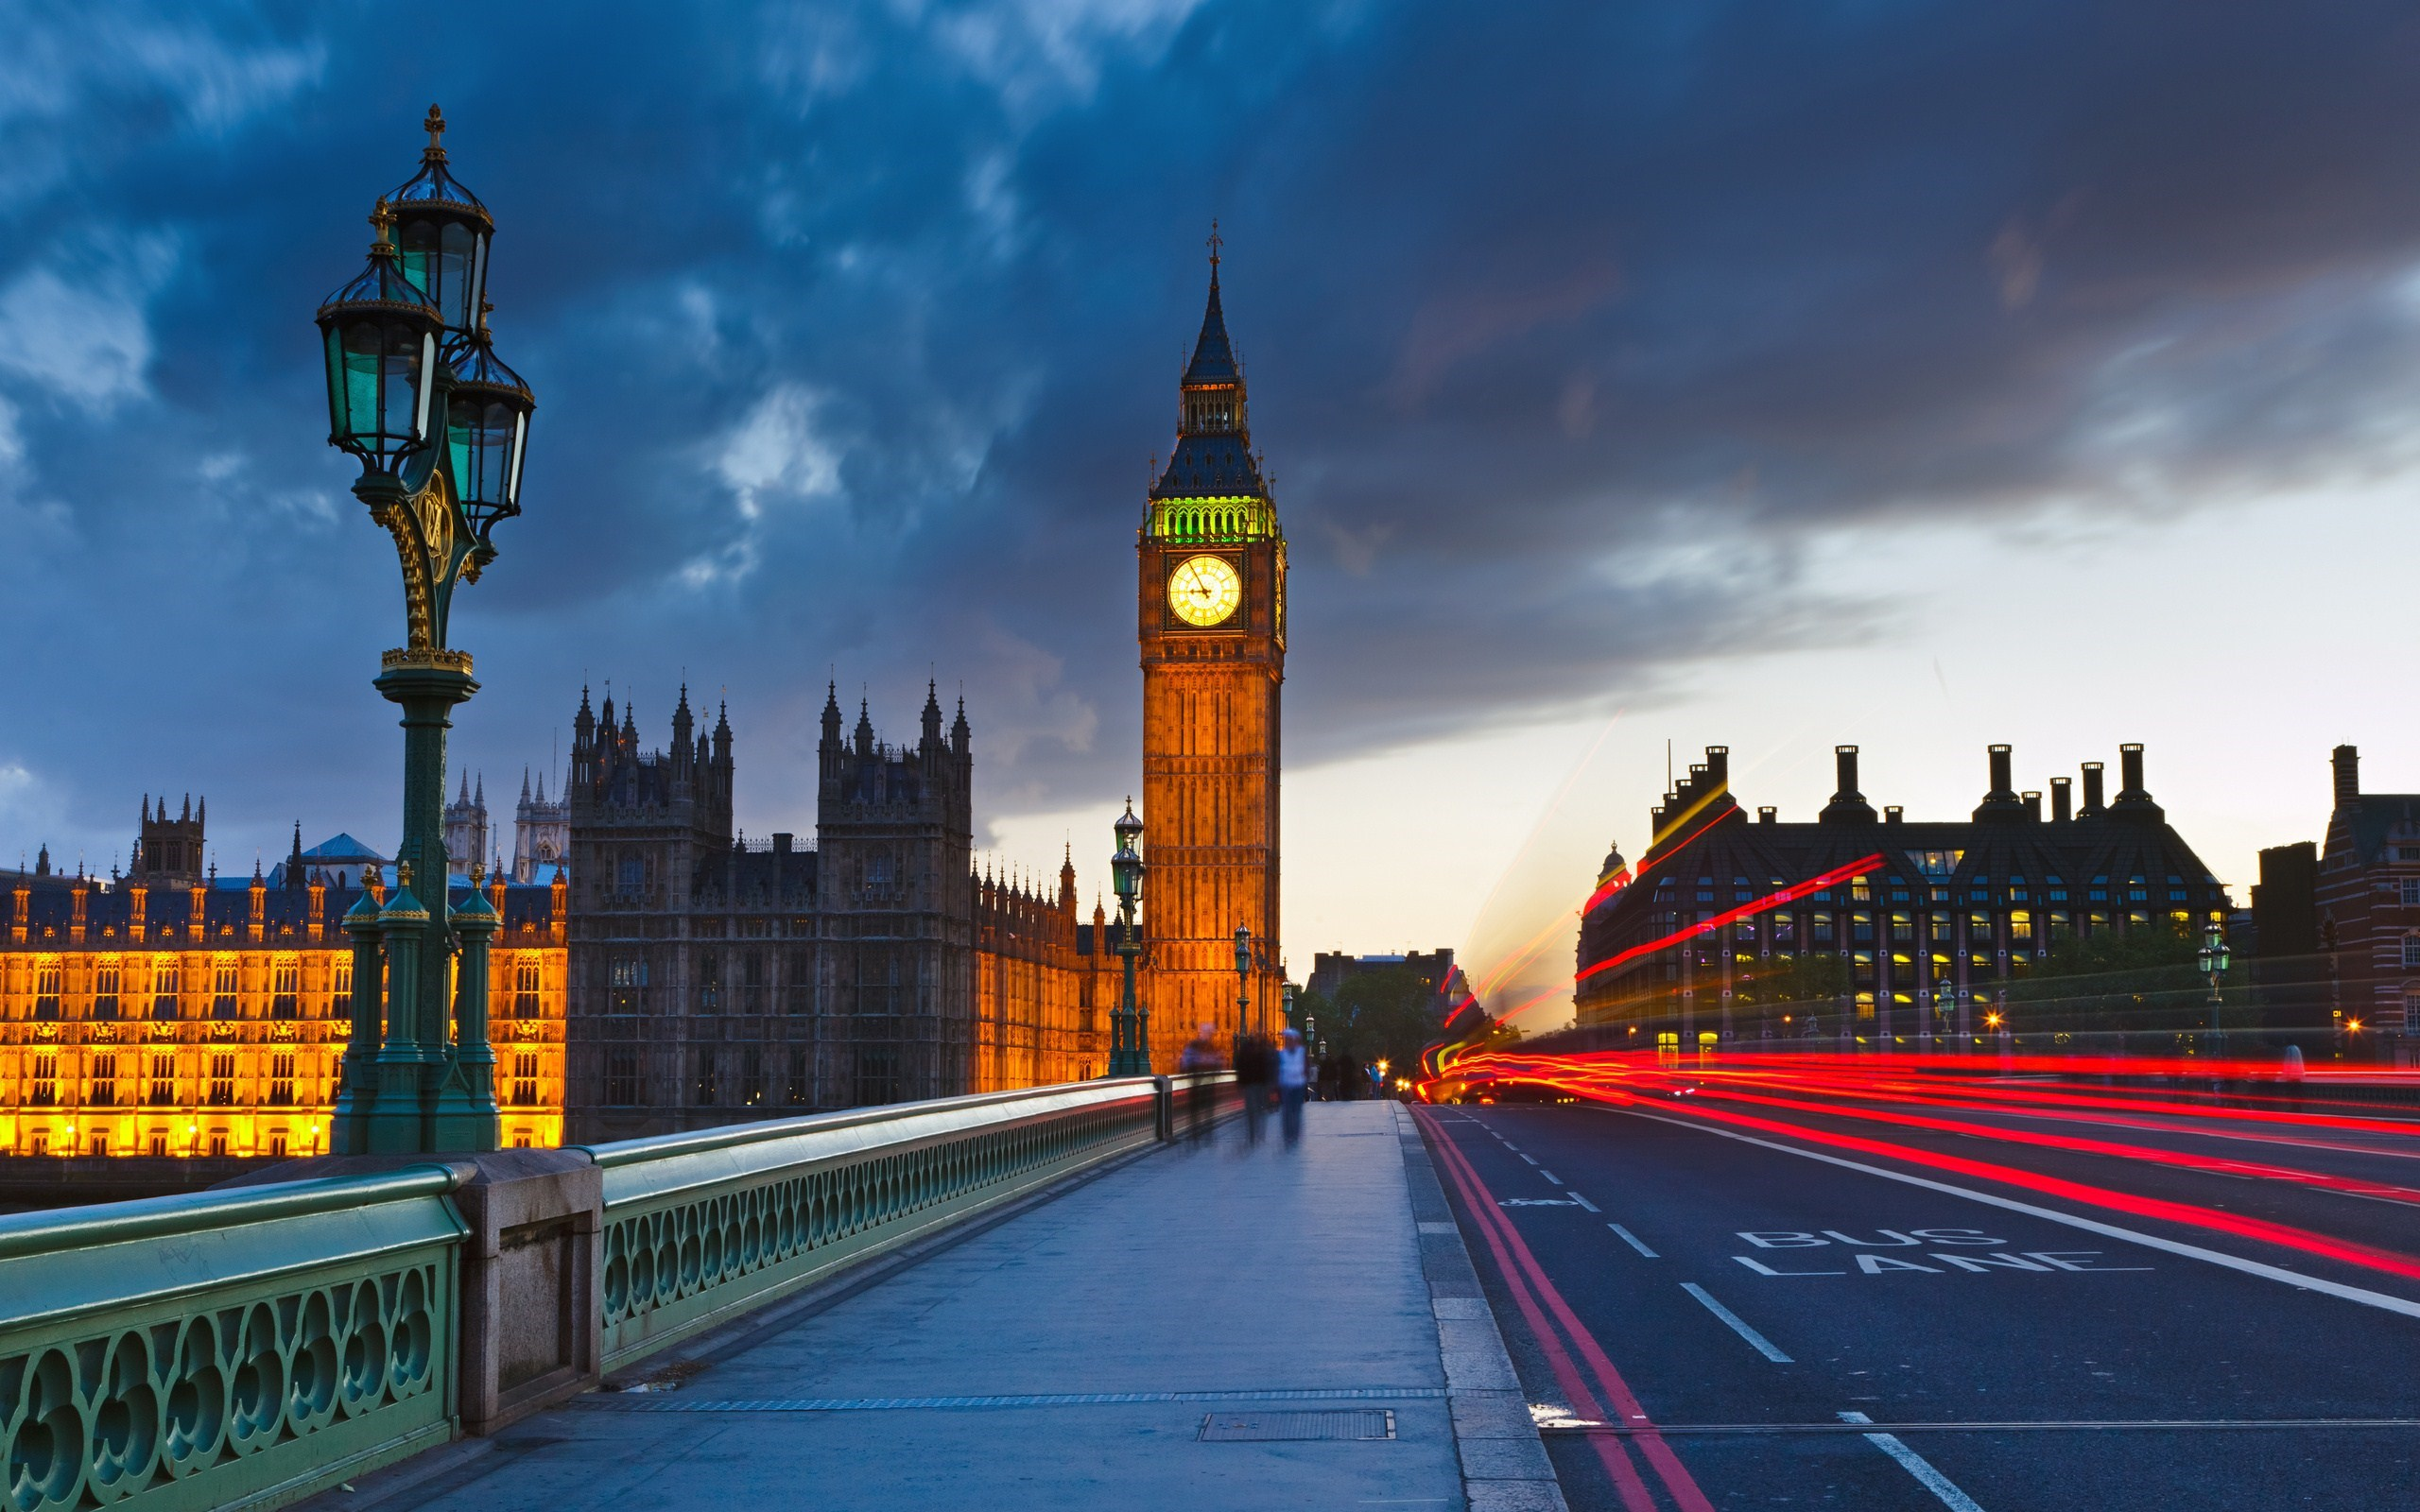 7026335-big-ben-uk-london-city-street-photo